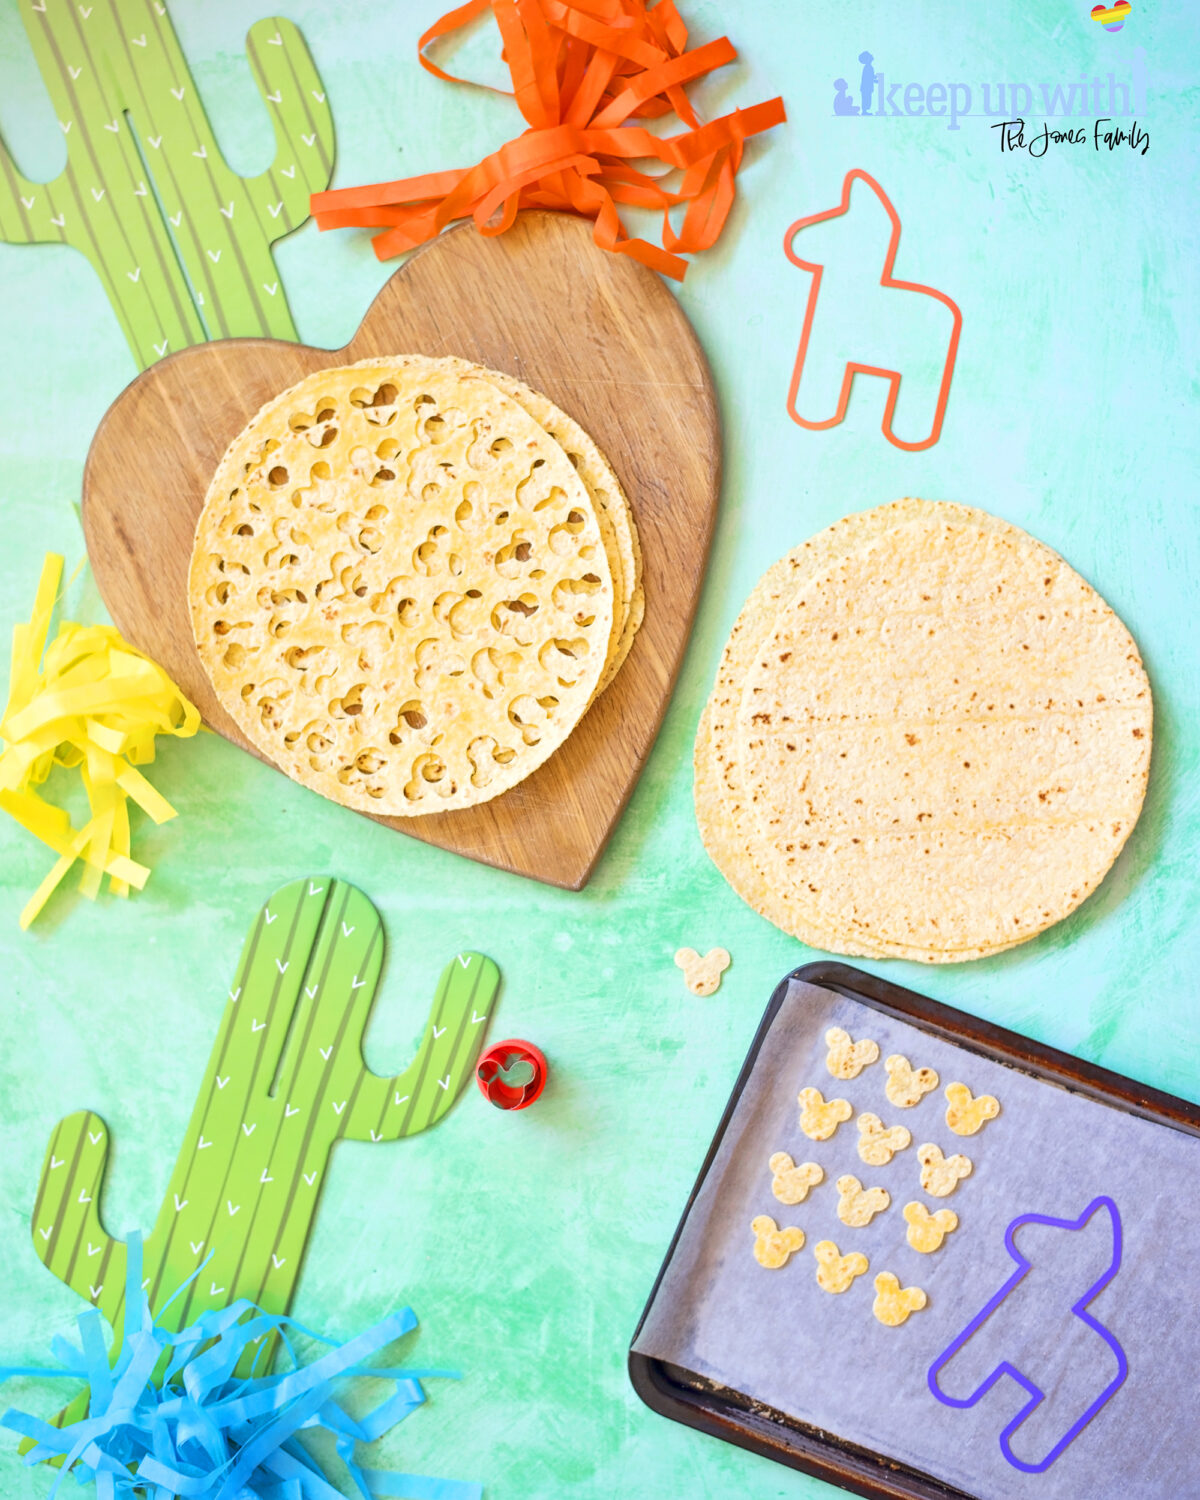 Image shows the recipe for Mickey Mouse taco chips. There is a baking tray with small cut out tortilla chips in the shape of Mickey Mouse's head. There is a metal Mickey Mouse cookie cutter and decorations for cinco de mayo, disney style.  There is a cardboard cactus and some tassles in bright colours on a sea green background.  Keep Up with the Jones Family.